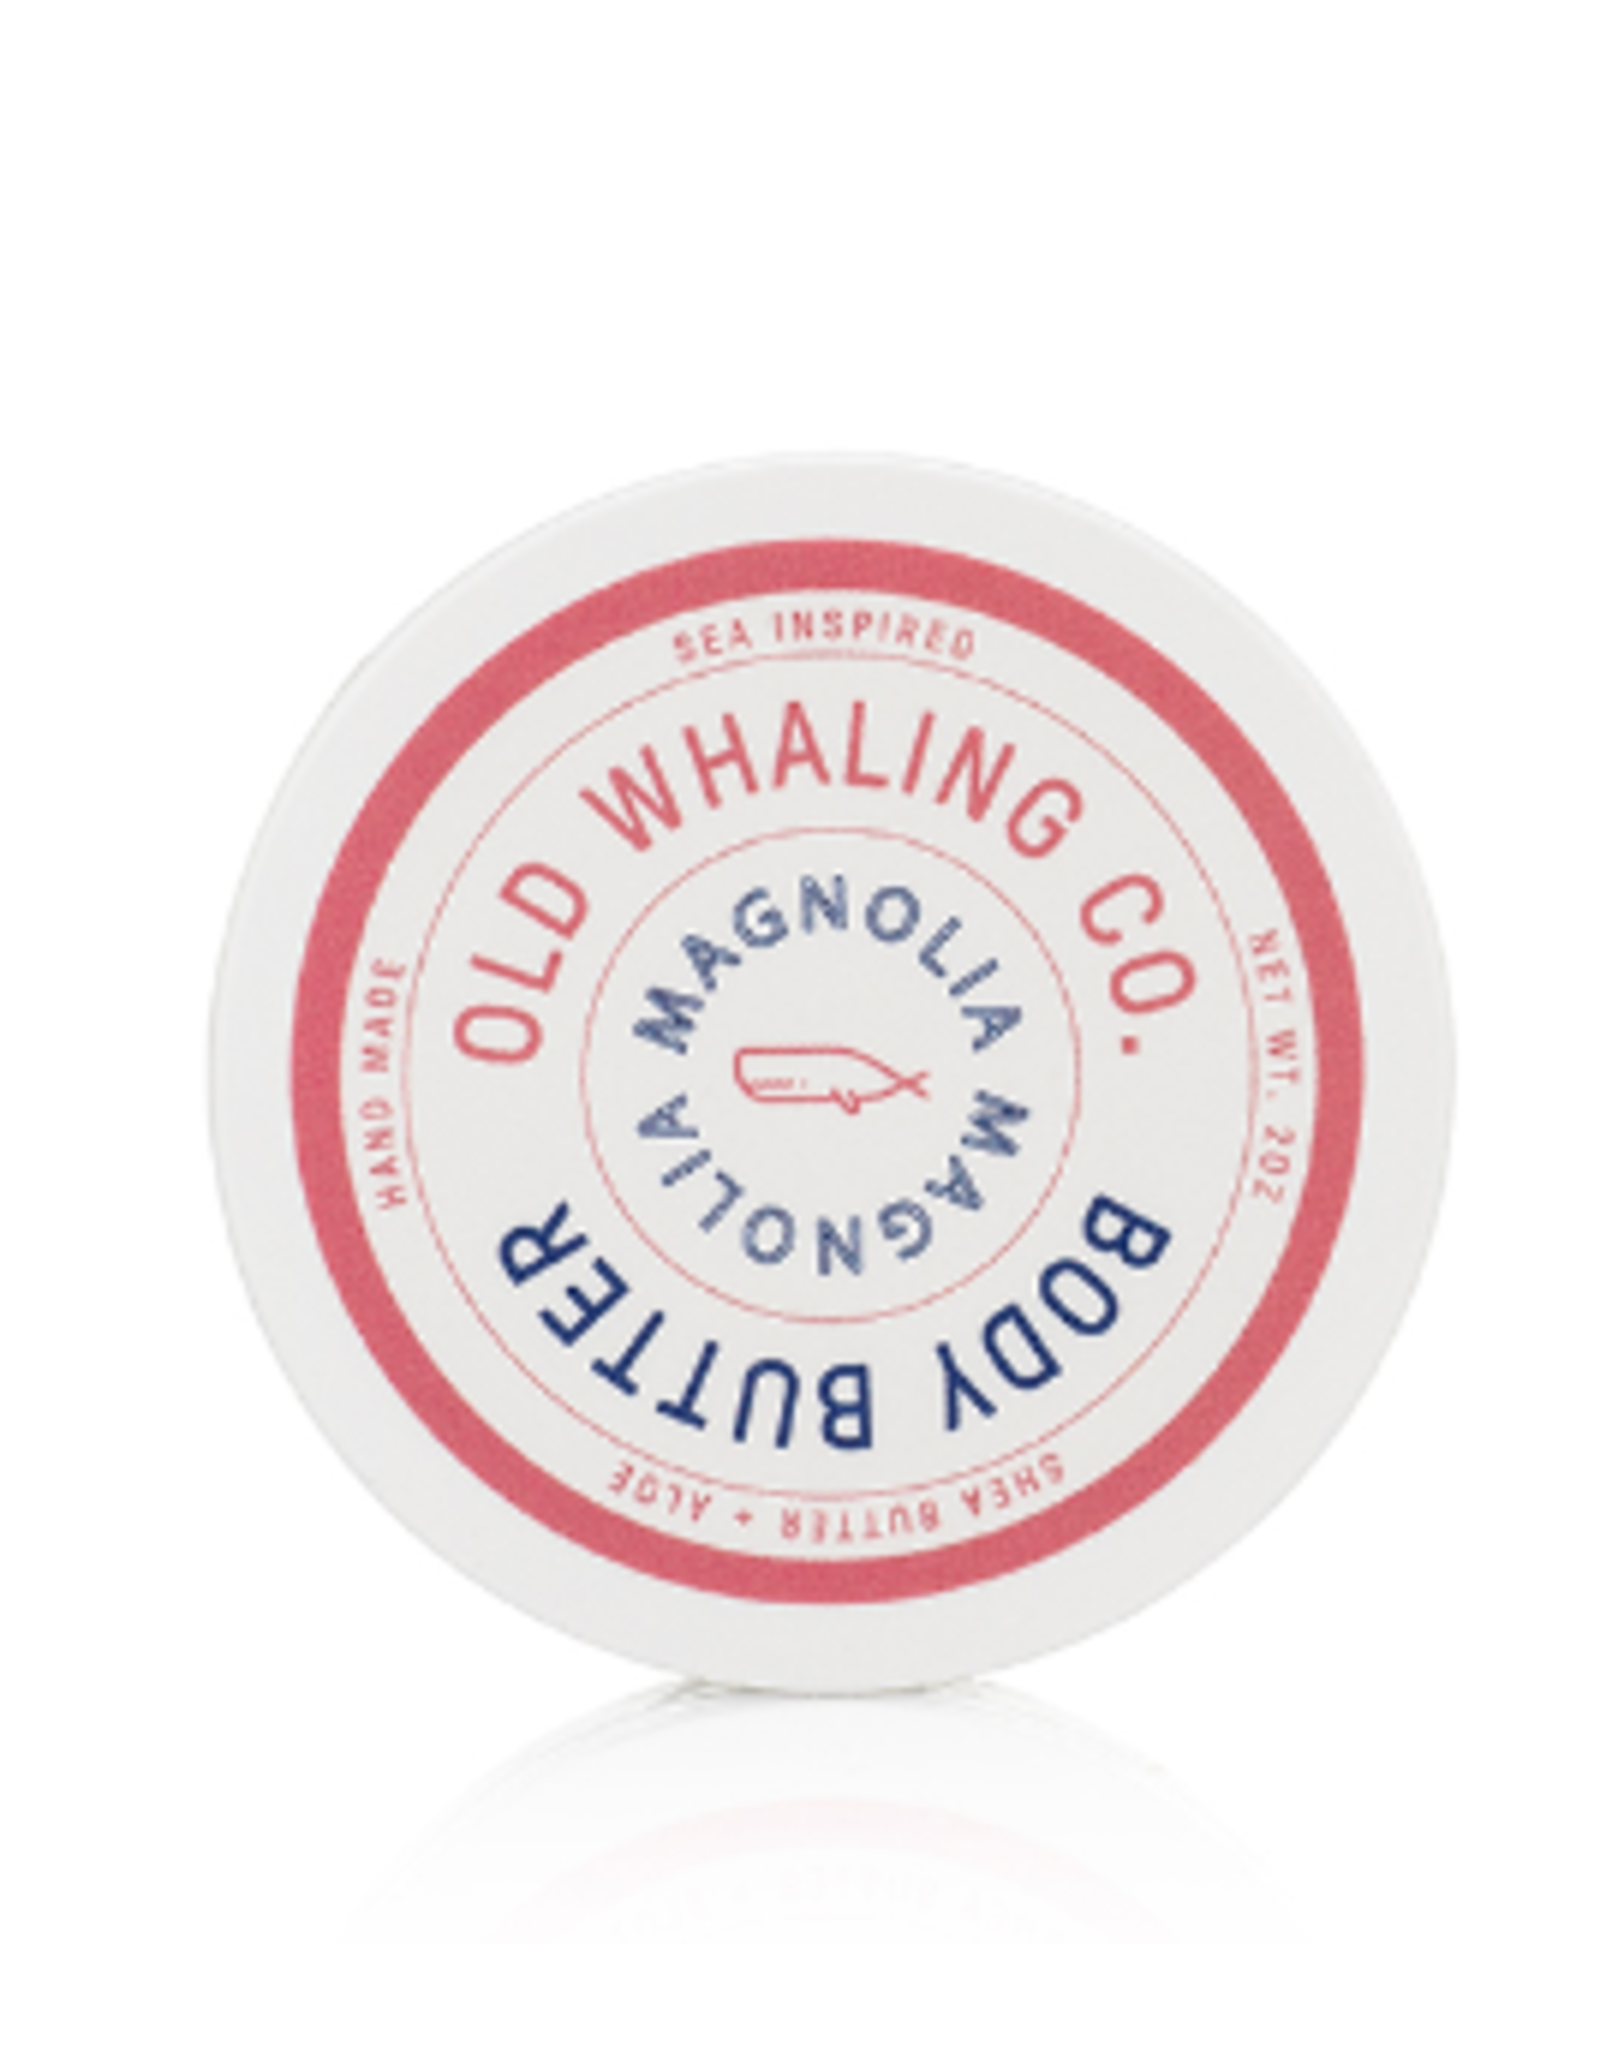 Old Whaling Co. Magnolia 2oz Body Butter